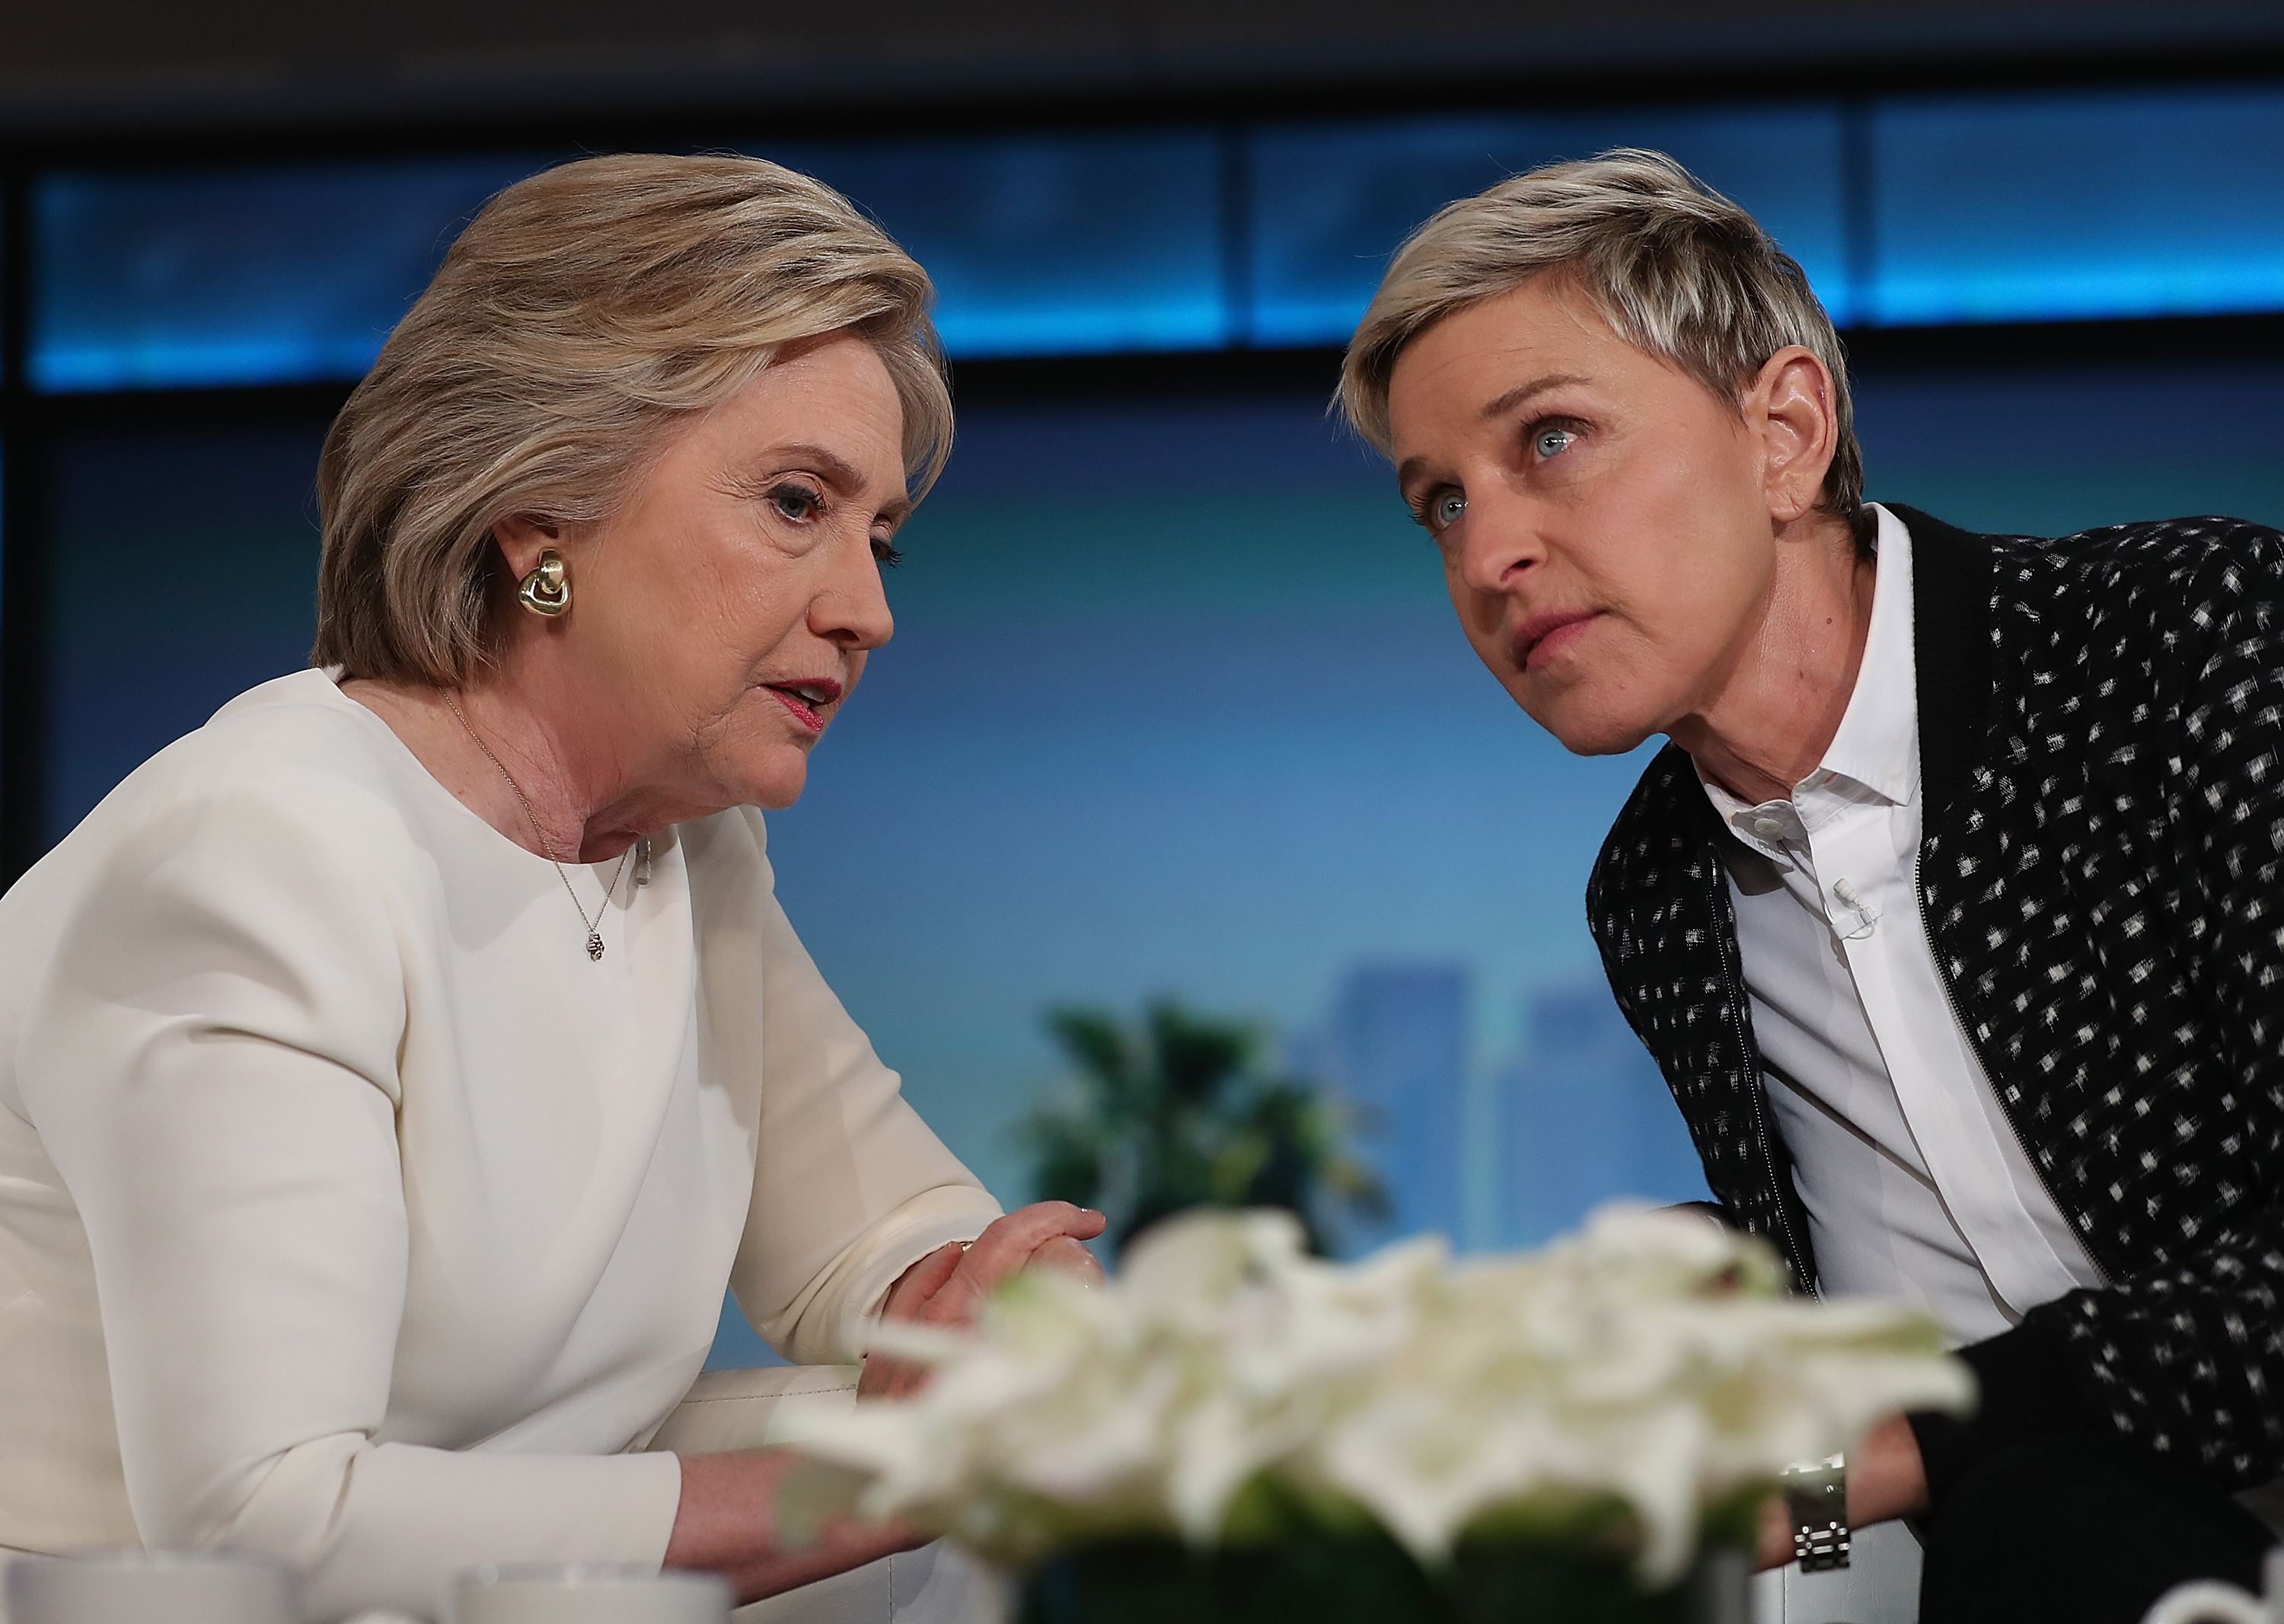 BURBANK, CA - MAY 24: Democratic presidential candidate former Secretary of State Hillary Clinton (L) talks with Ellen DeGeneres during a taping of The Ellen DeGeneres Show on May 24, 2016 in Burbank, California. Hillary Clinton is campaigning in California ahaed of the State's presidential primary on June 7th. (Photo by Justin Sullivan/Getty Images)